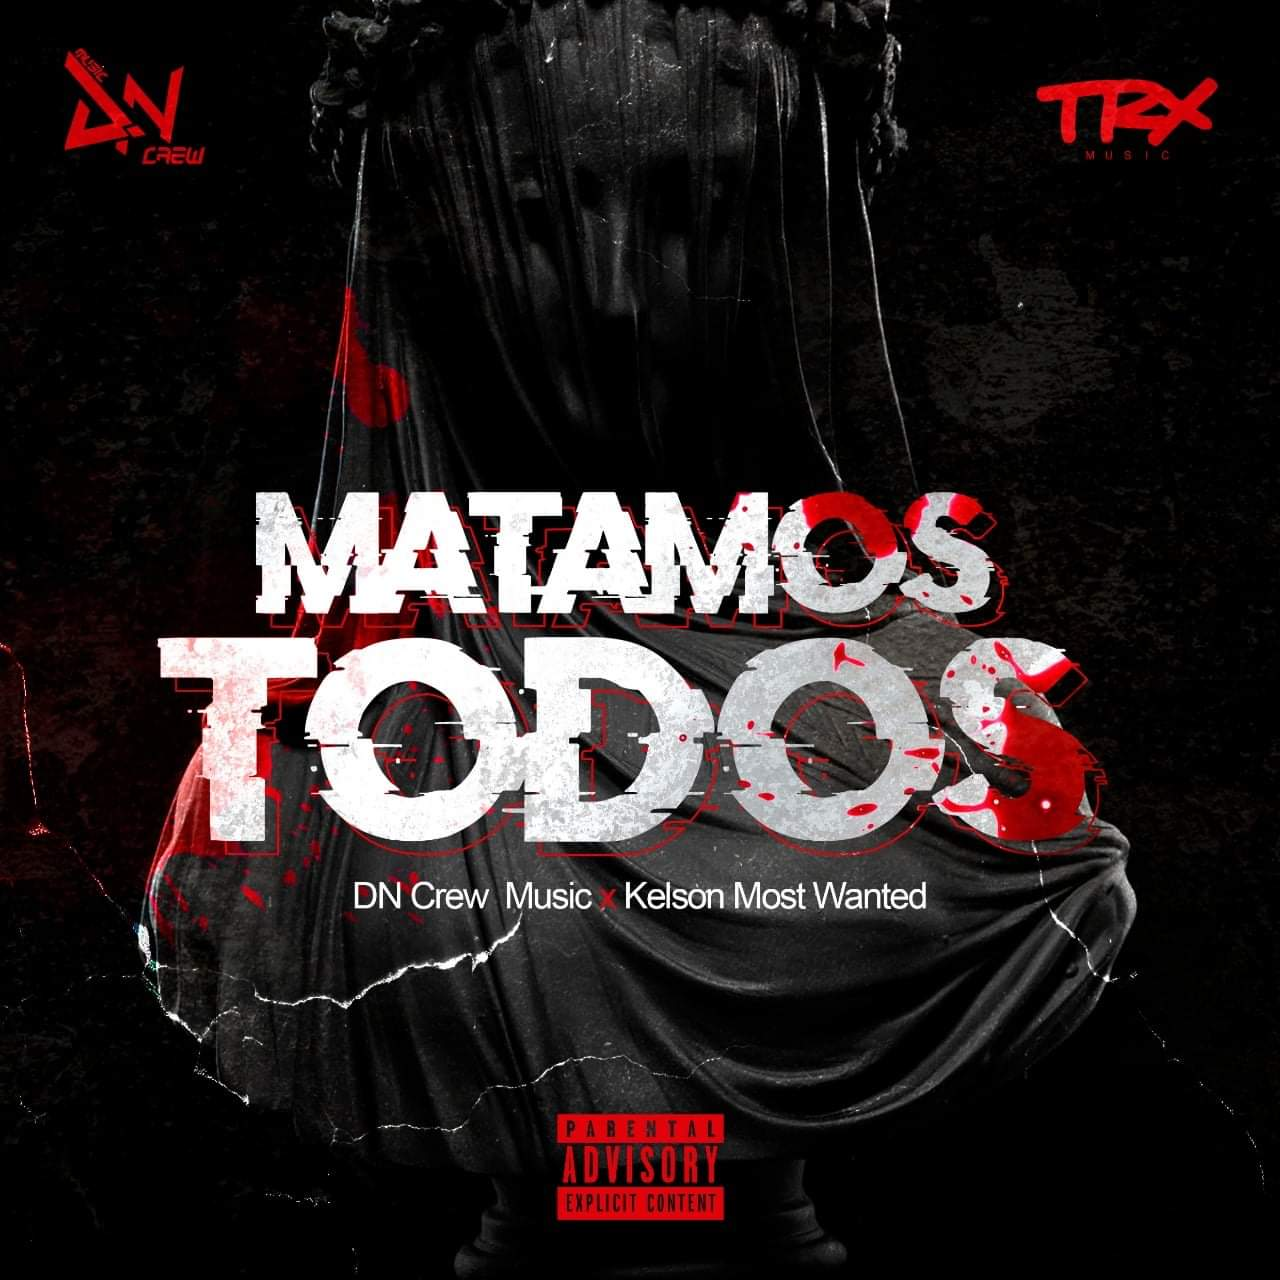 DN Crew Music Feat. Kelson Most Wanted - Matamos Todos